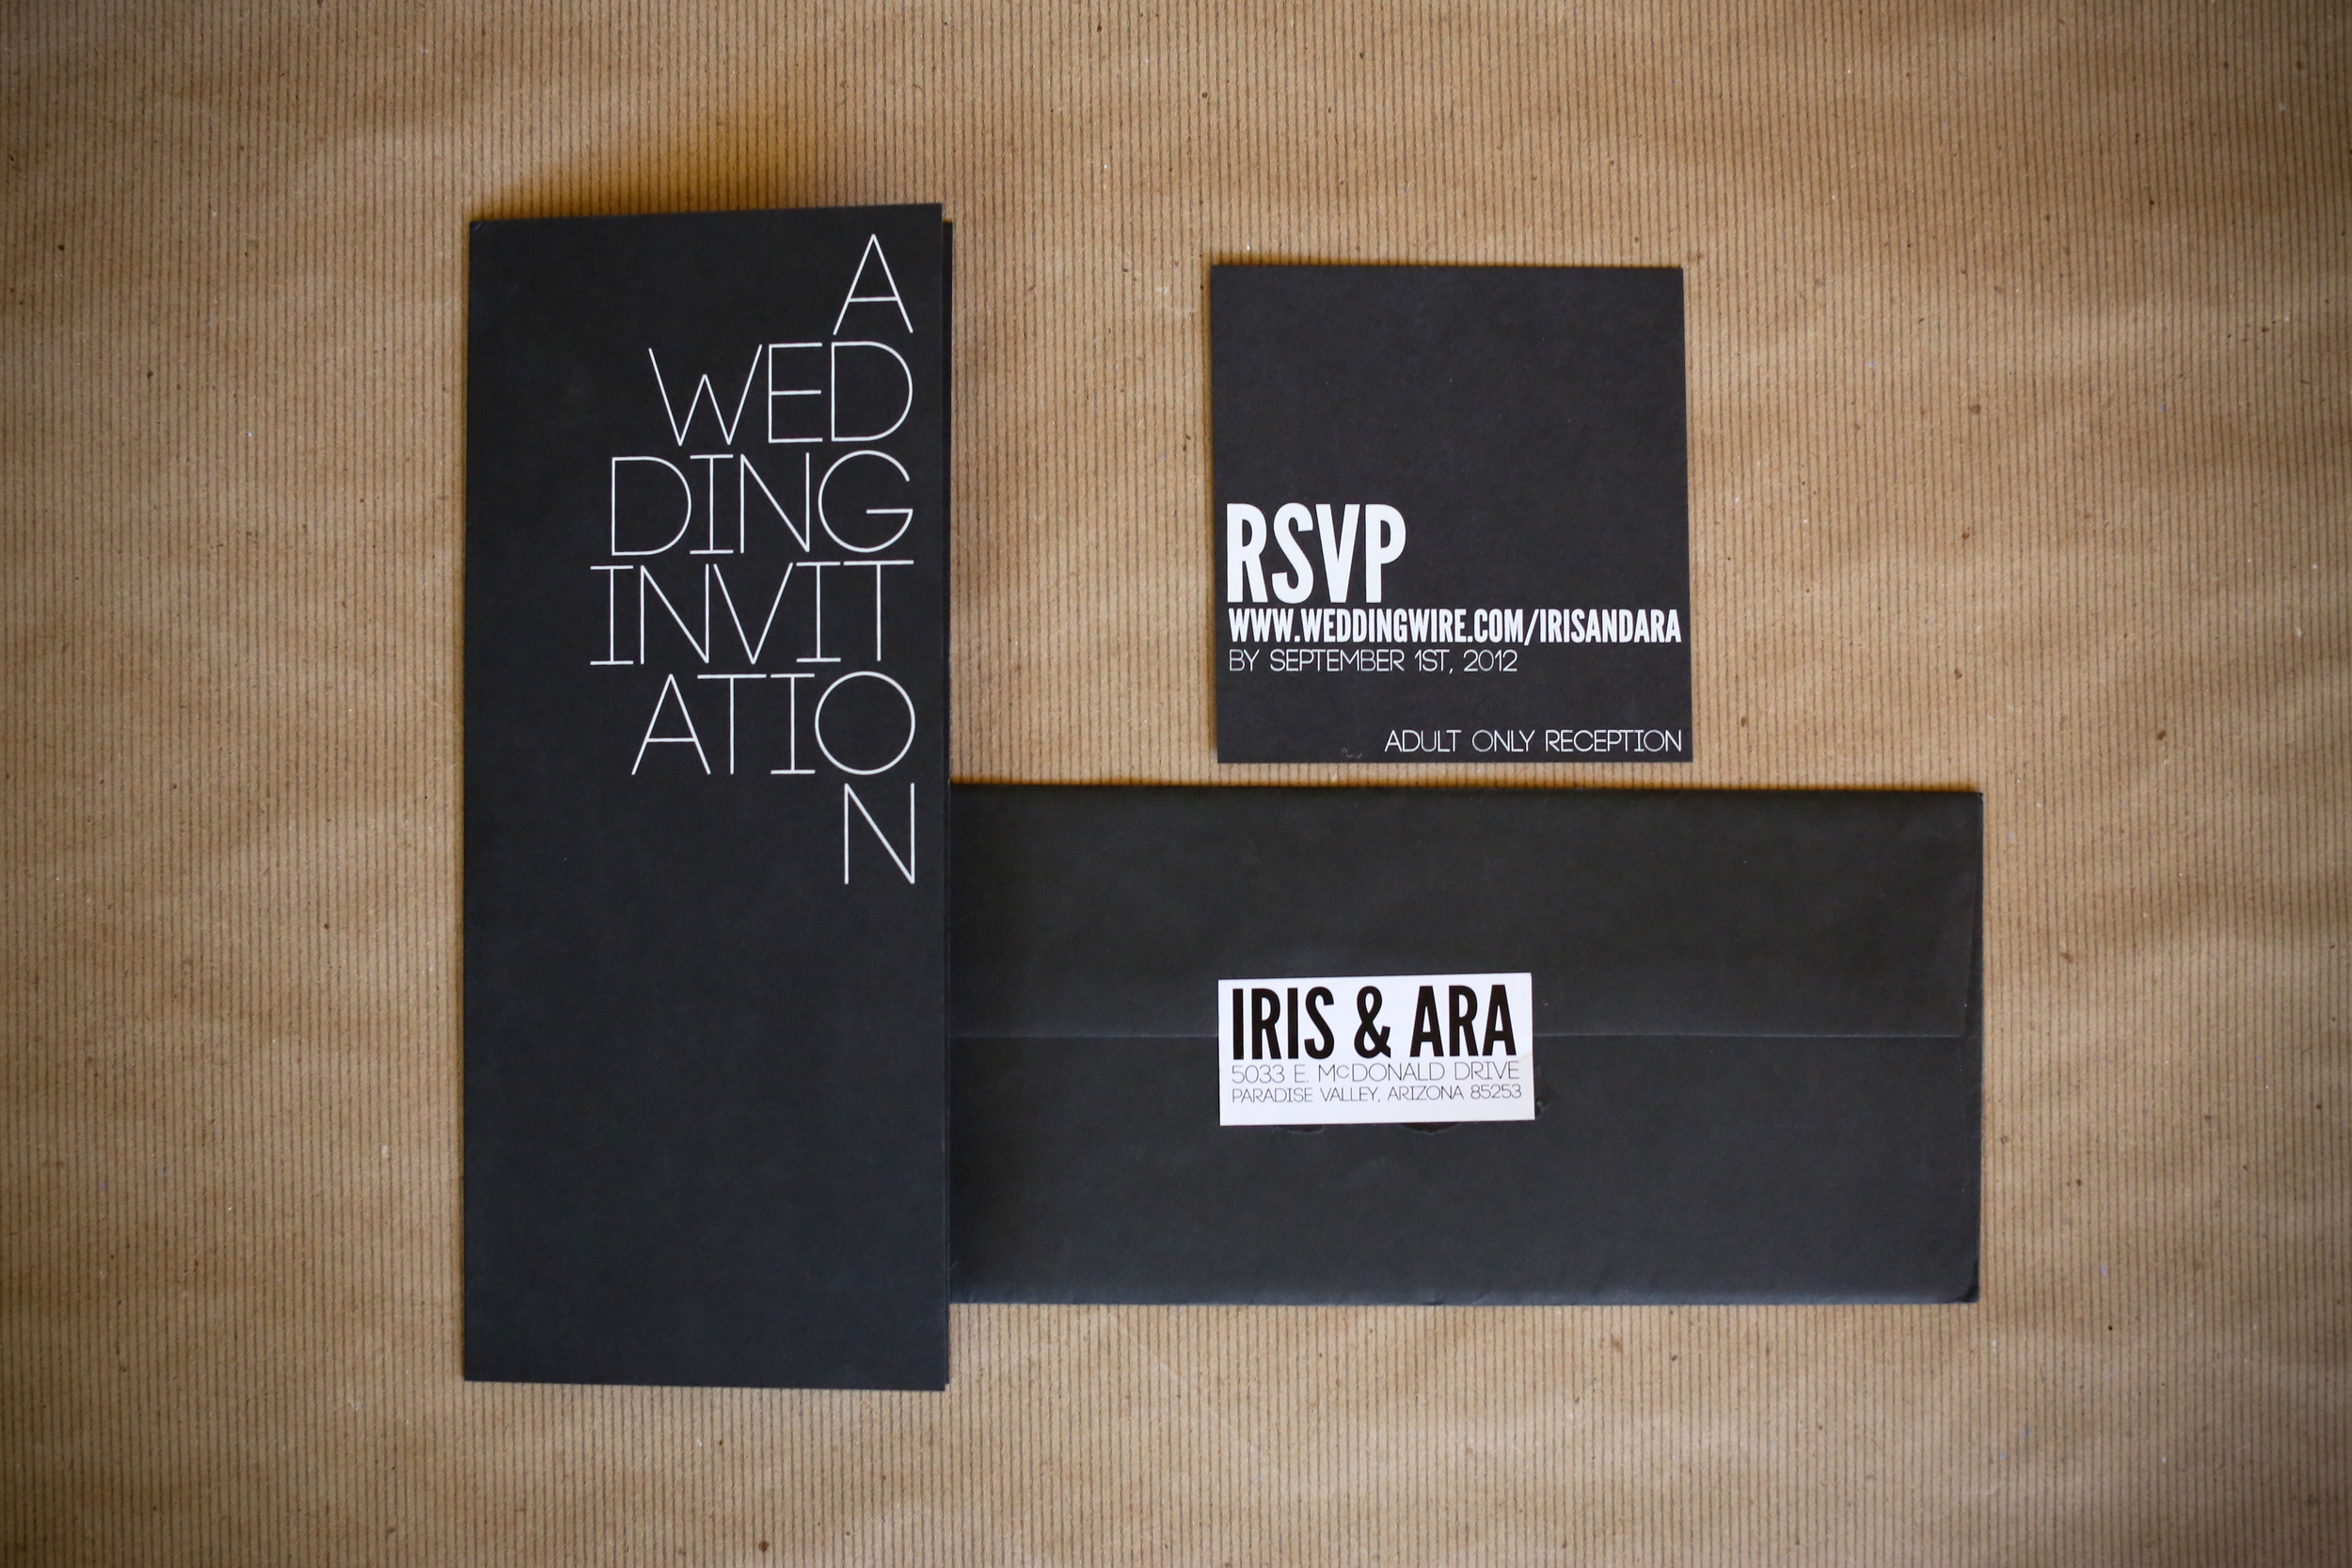 ara_iris_wedding_Invites_BW-0078-2099783396-O.jpg